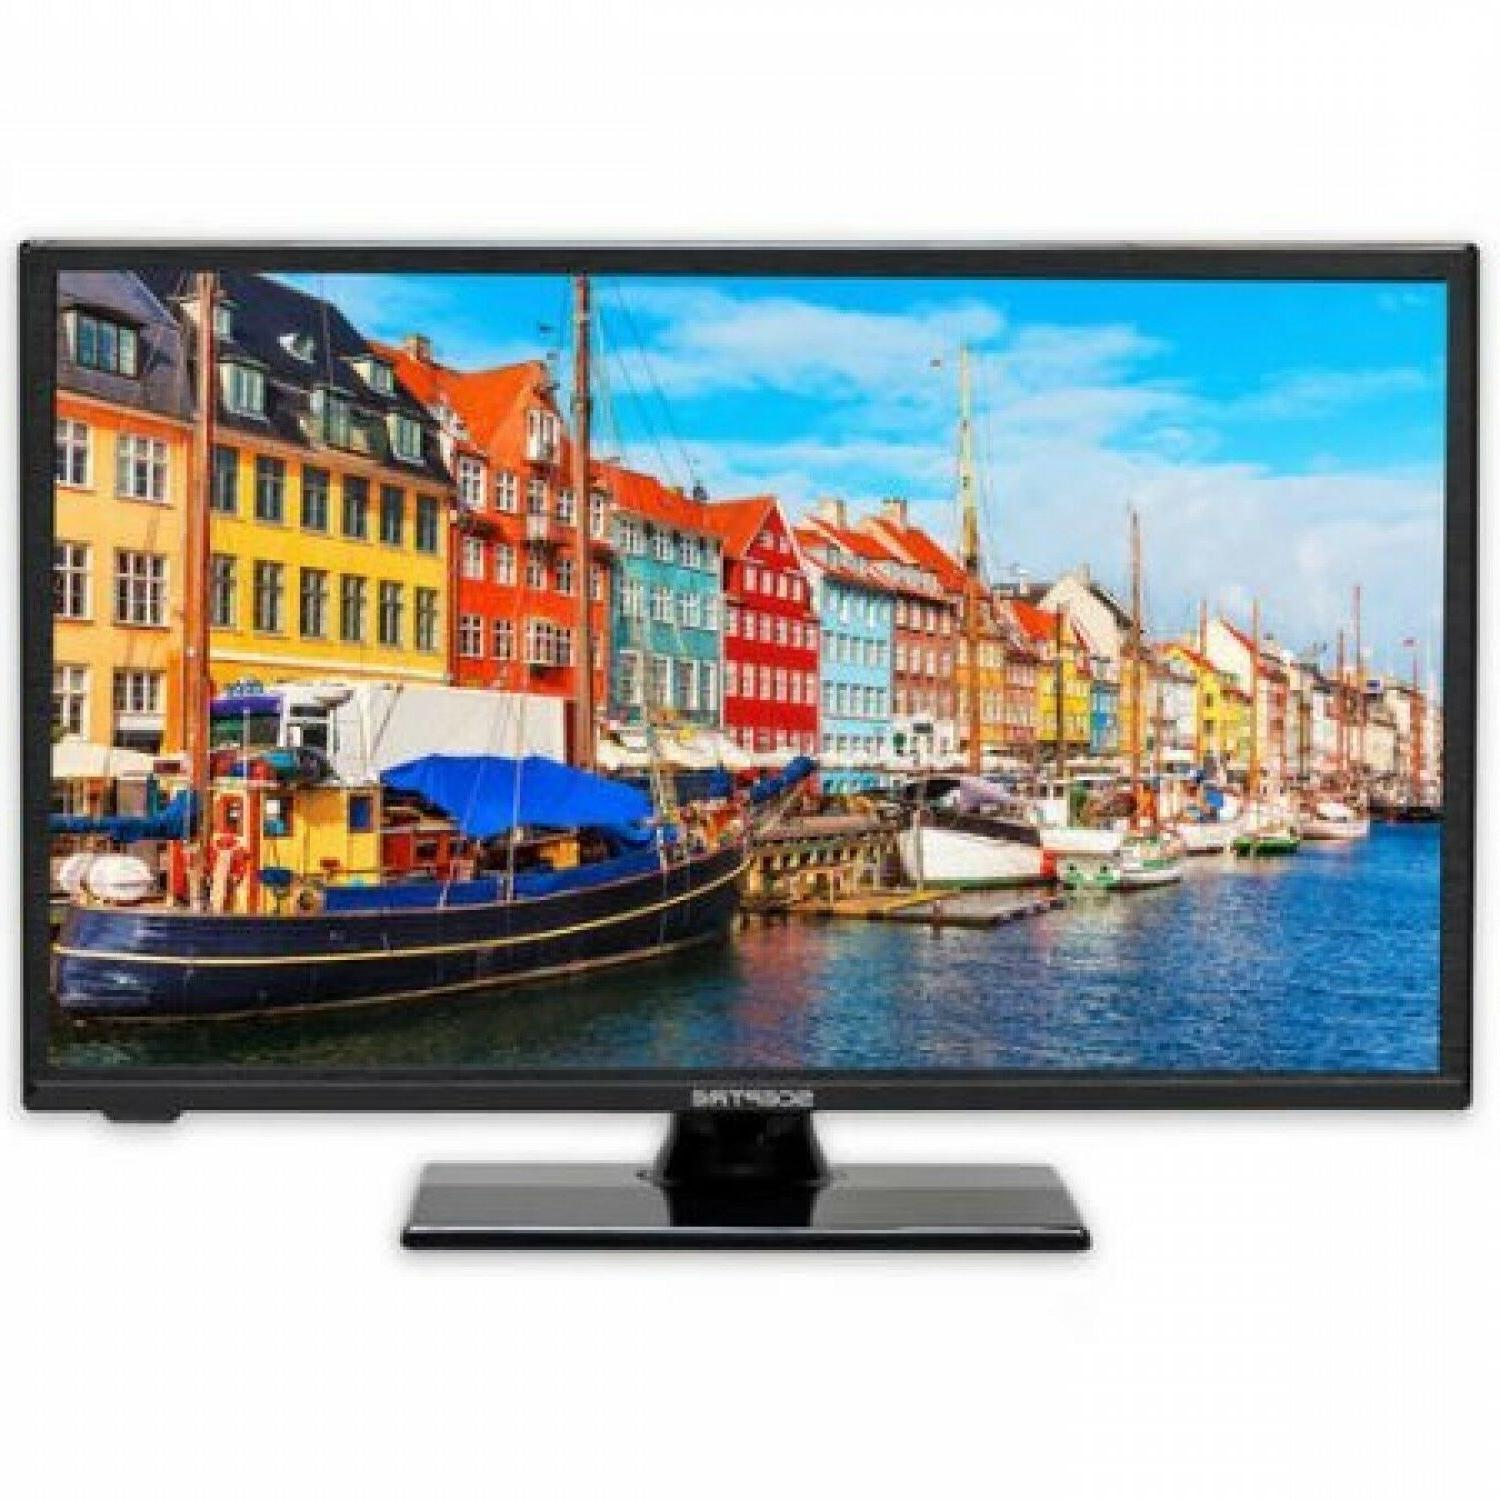 19 class hd led tv 720p 60hz